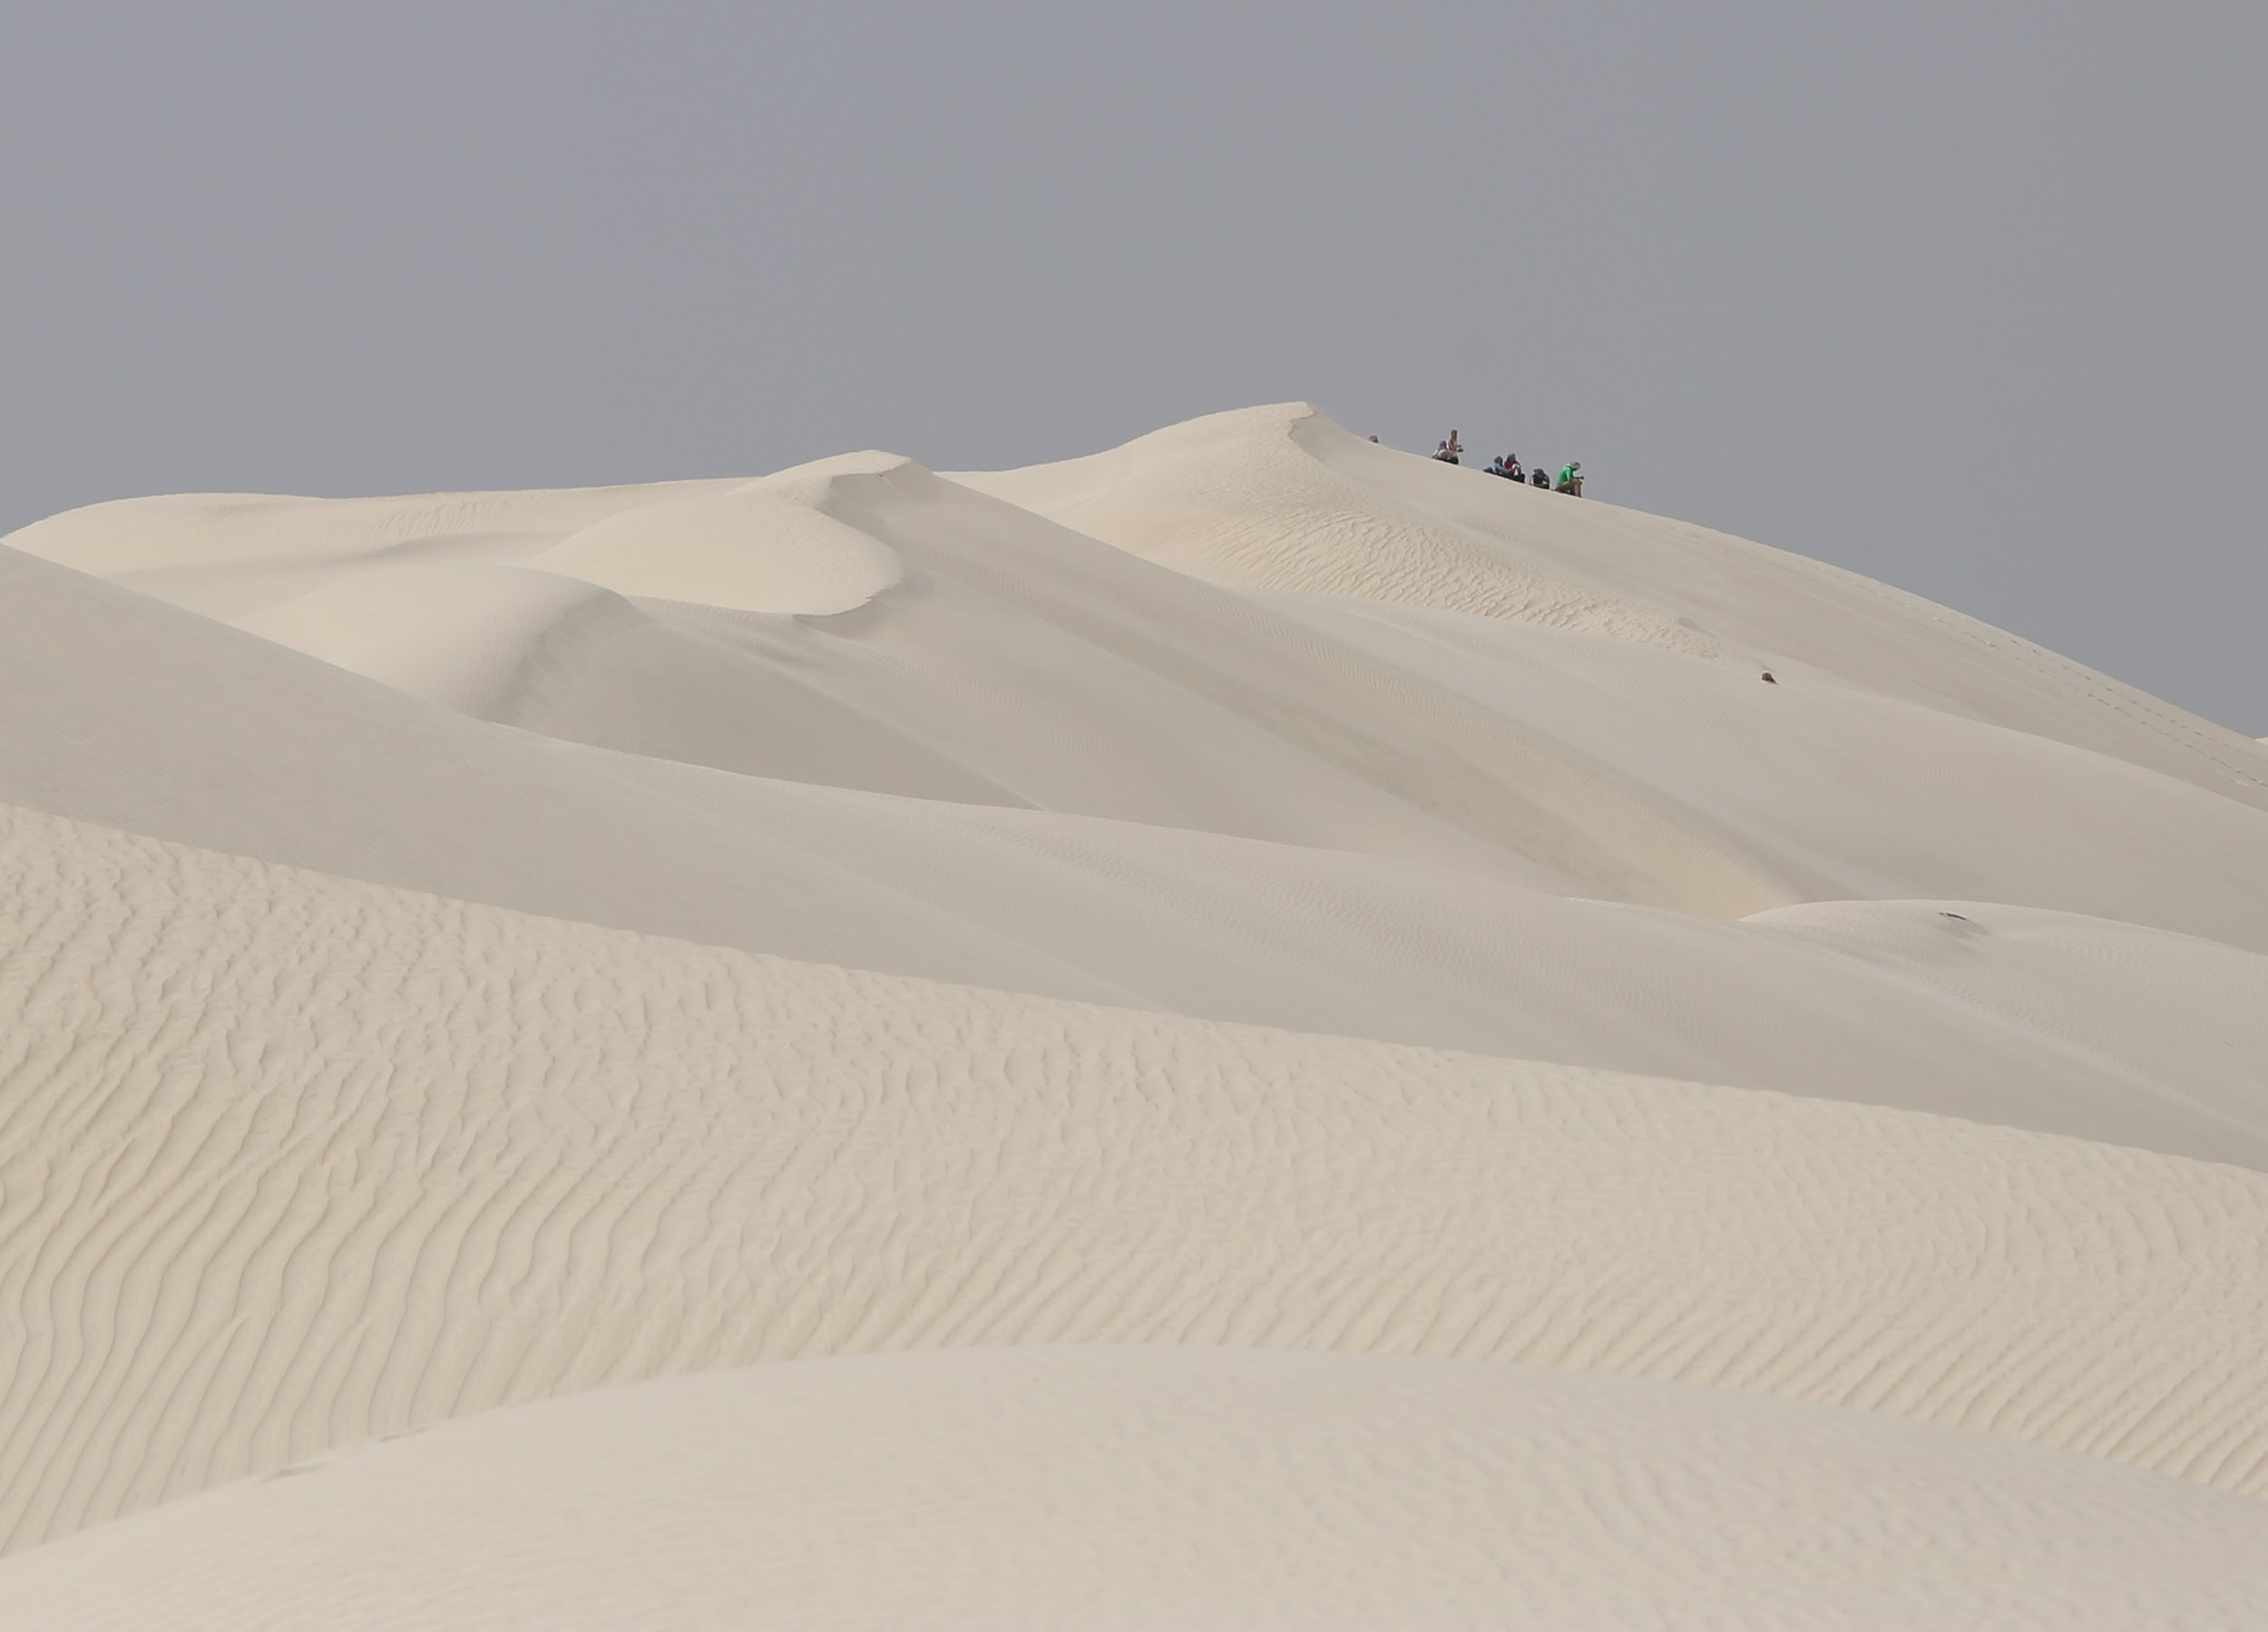 The team in the distance clearly visible on the Sugar Dunes...